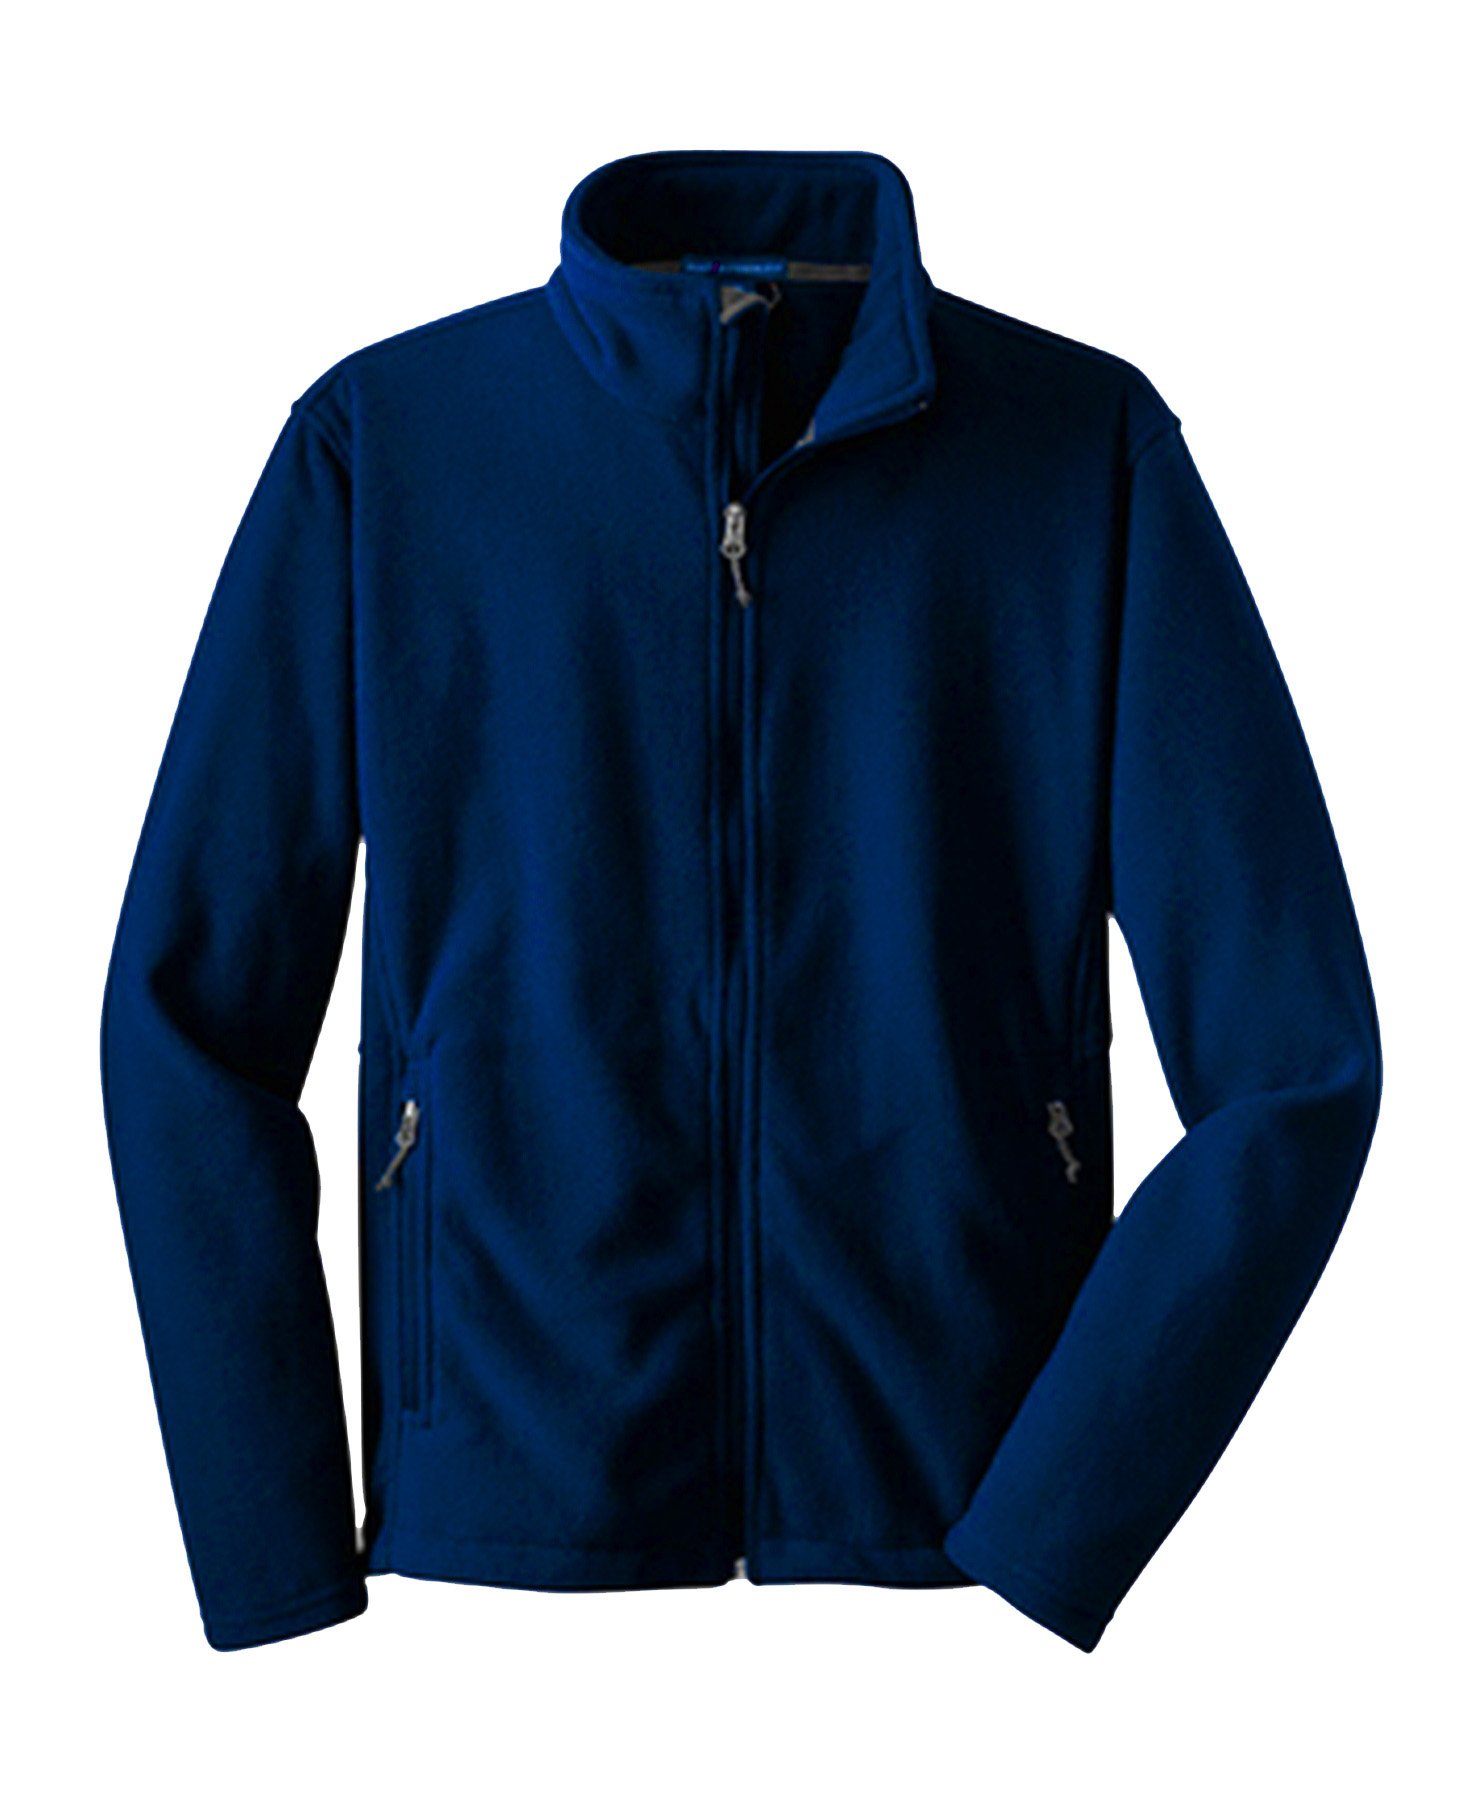 BOYS - PREMIUM - Hoodless Fleece Zipper Jacket